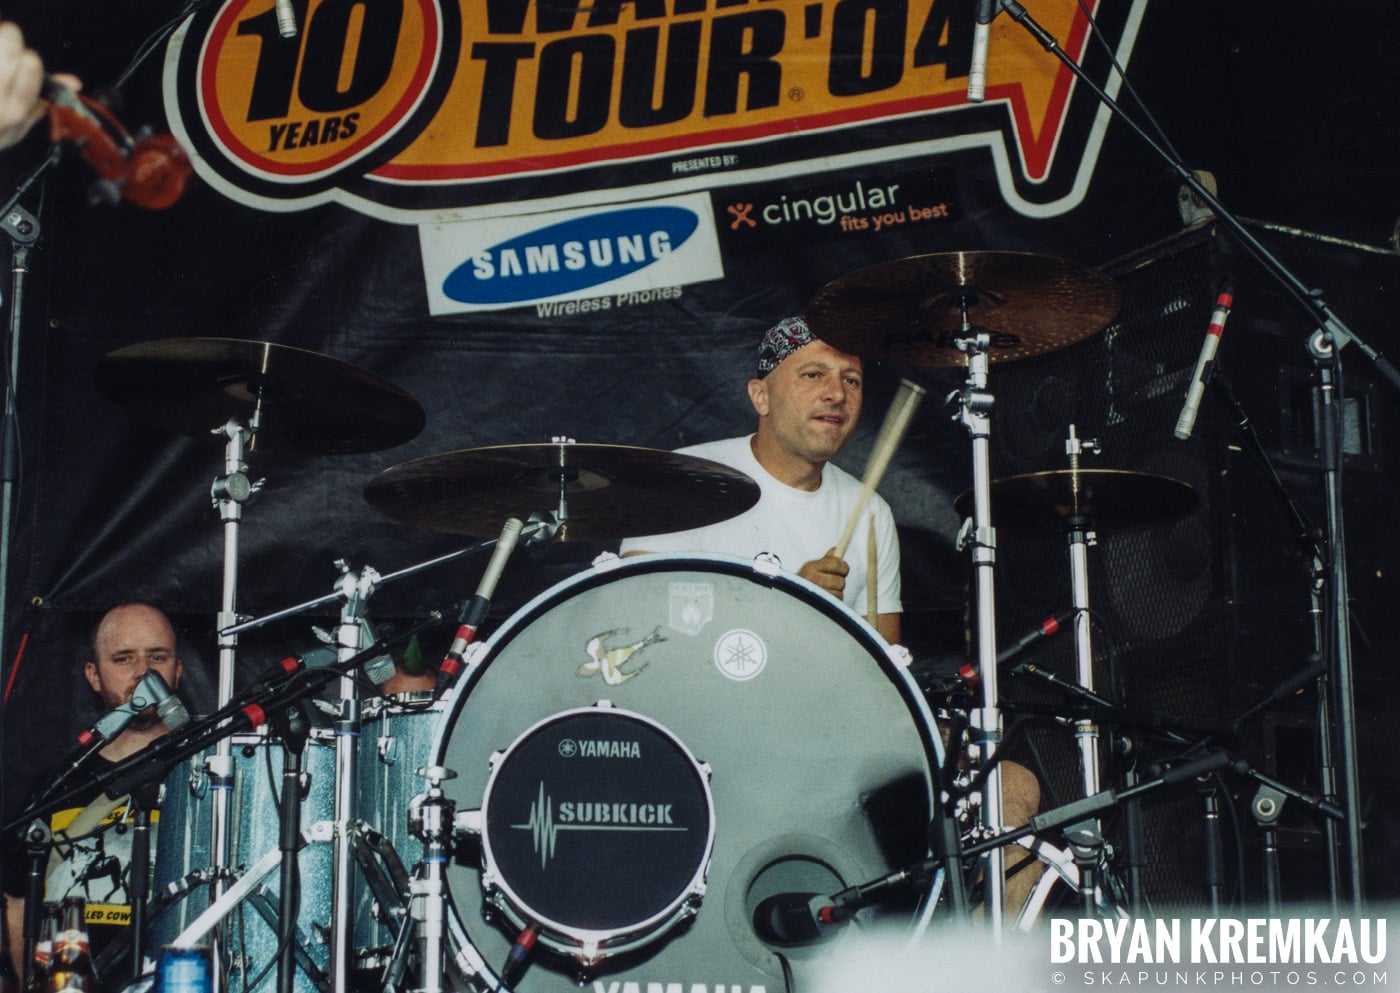 Flogging Molly @ Vans Warped Tour, Randall's Island, NYC - 8.7.04 (3)